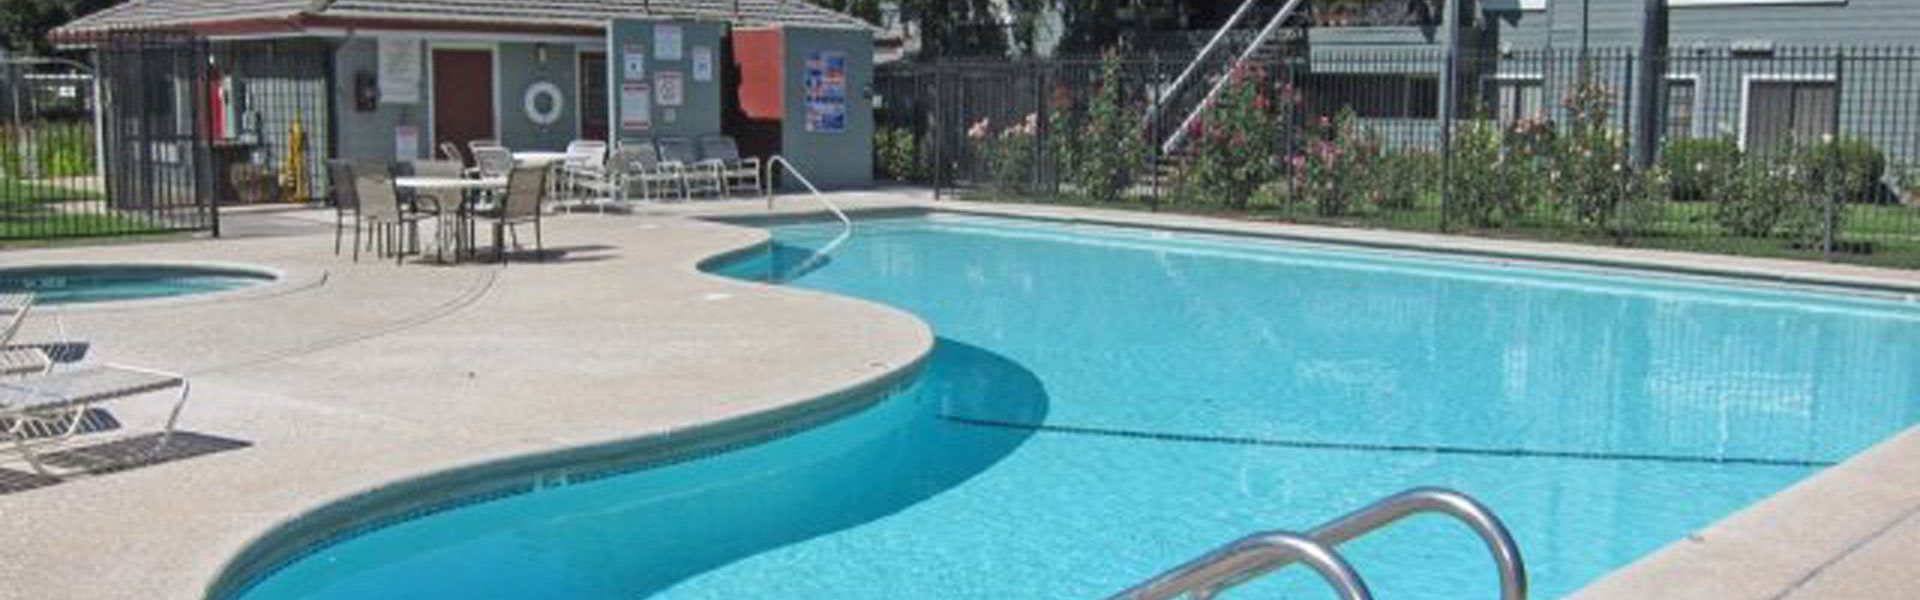 Lodi Ca l Lakeshore Meadows and Garden | Apartments | Pool